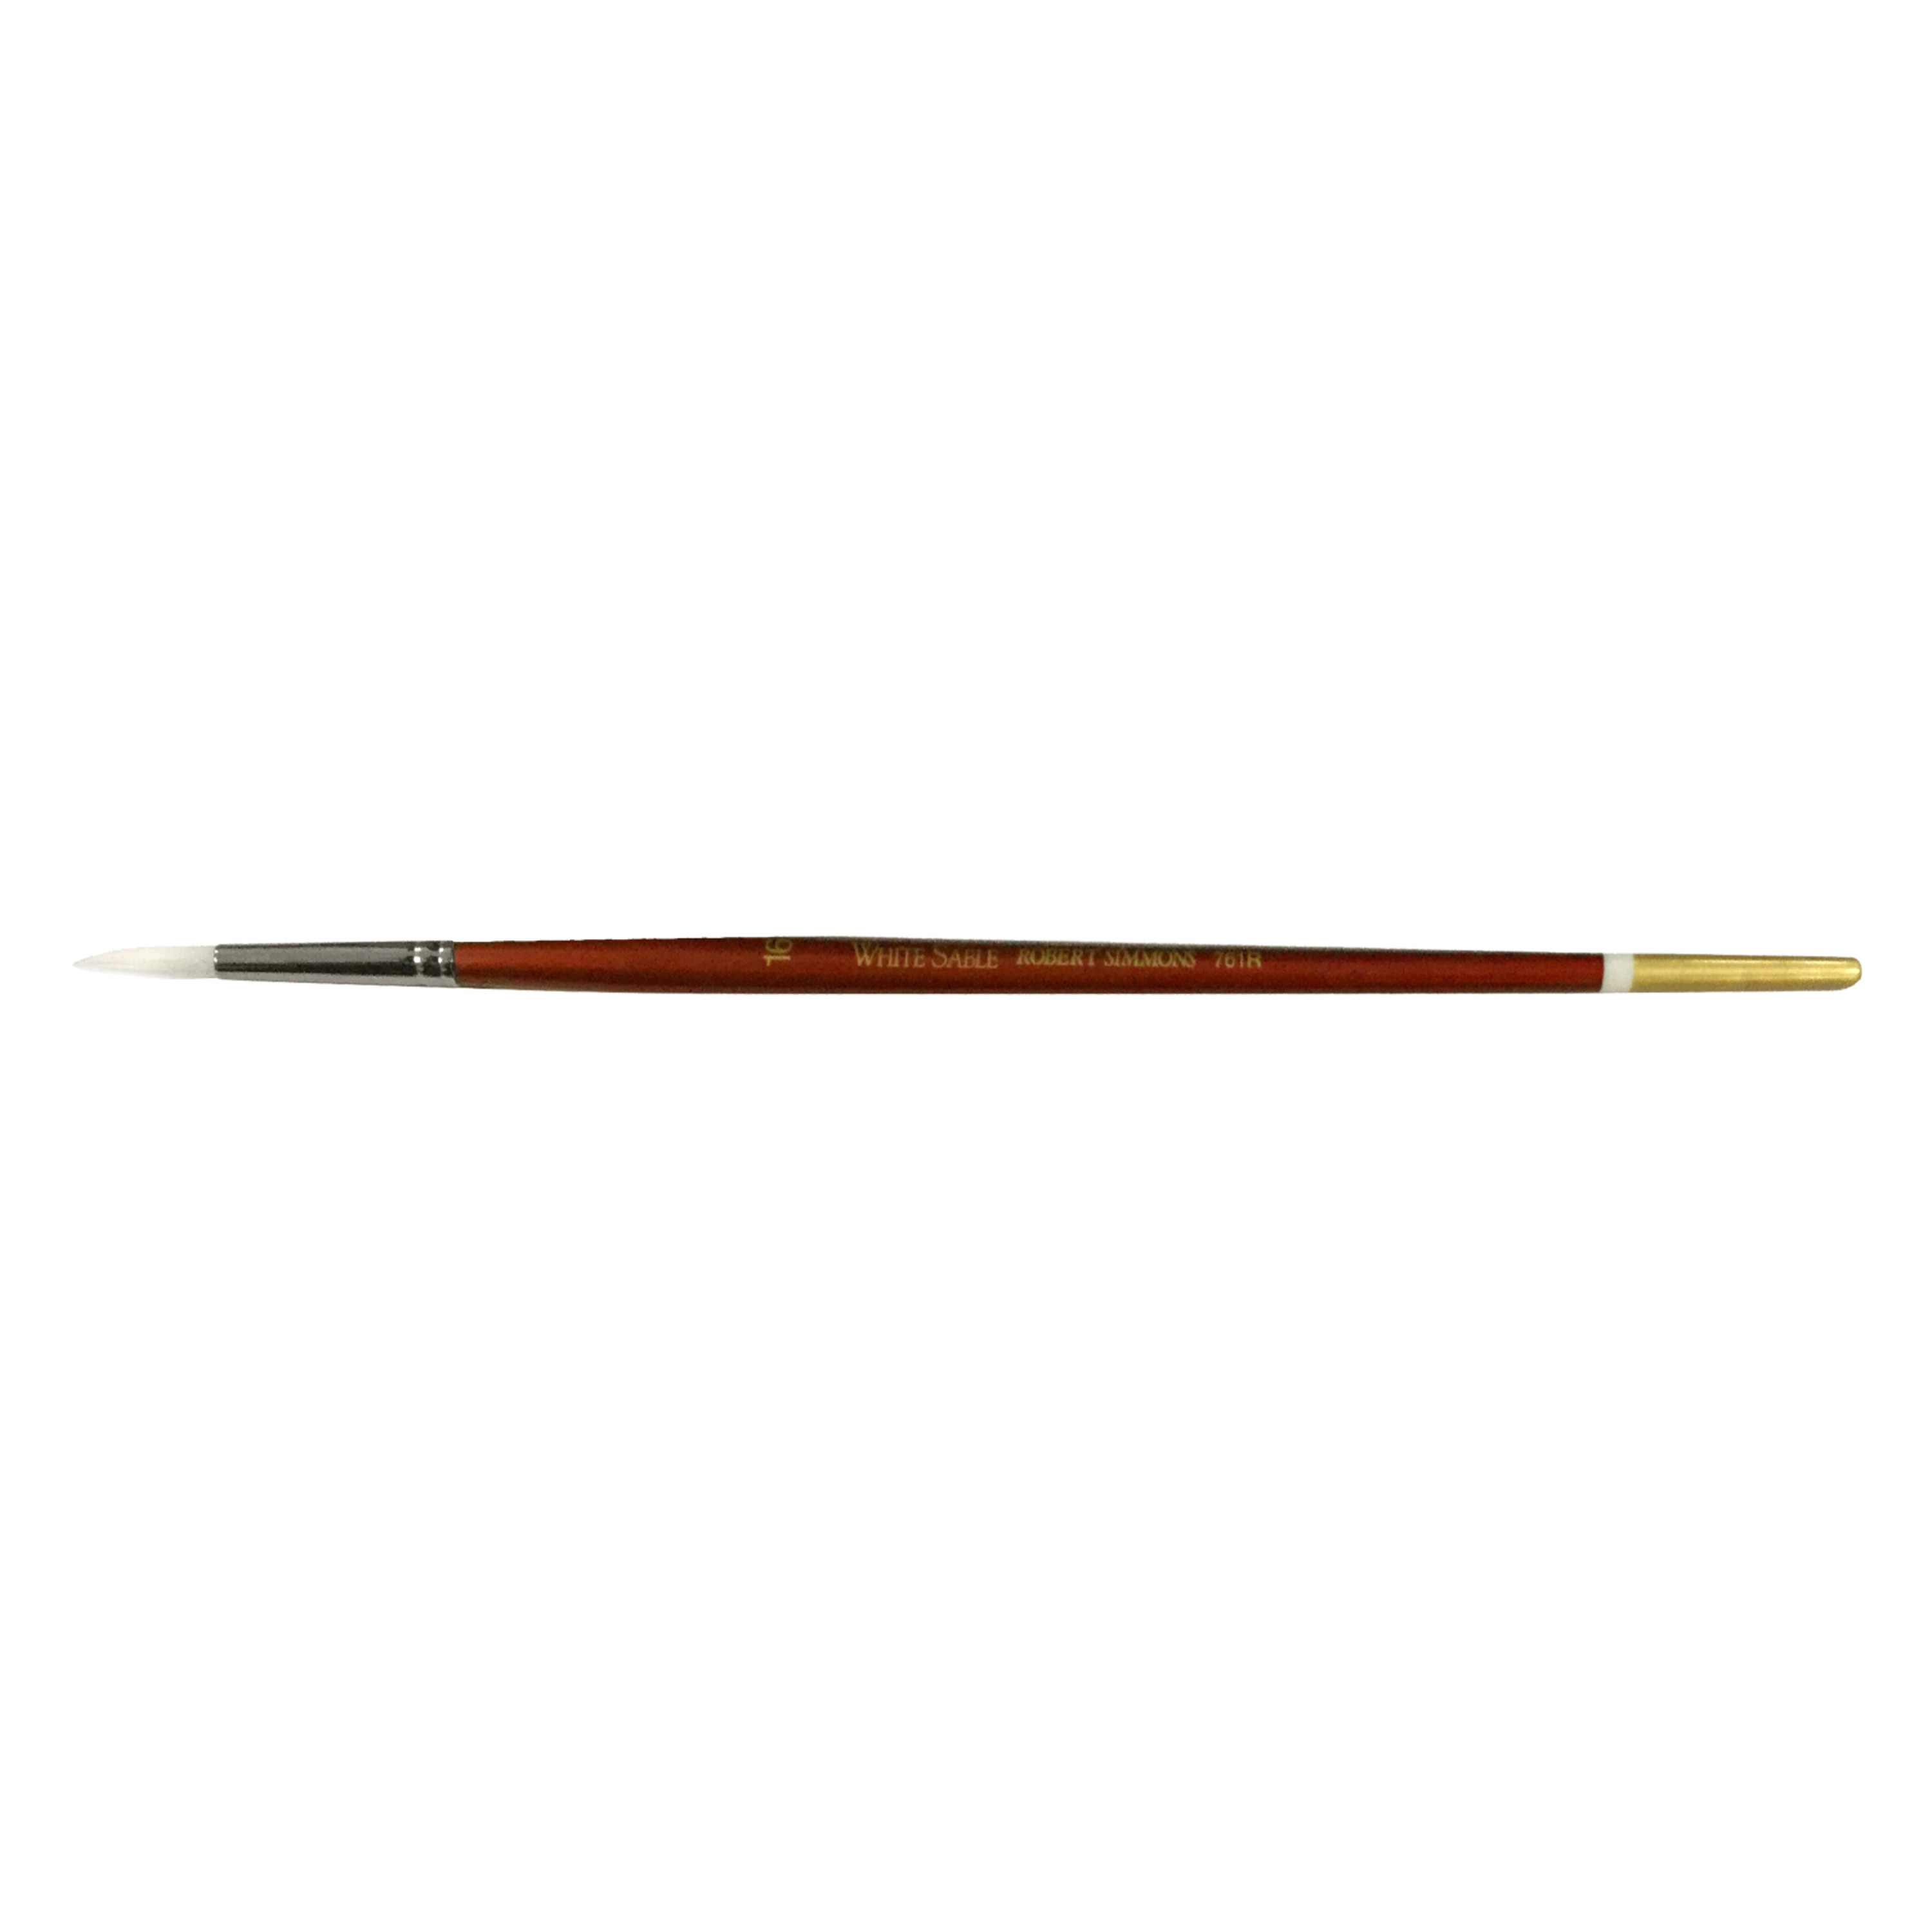 Robert Simmons White Sable Long Handle Brushes 6 bright 760B